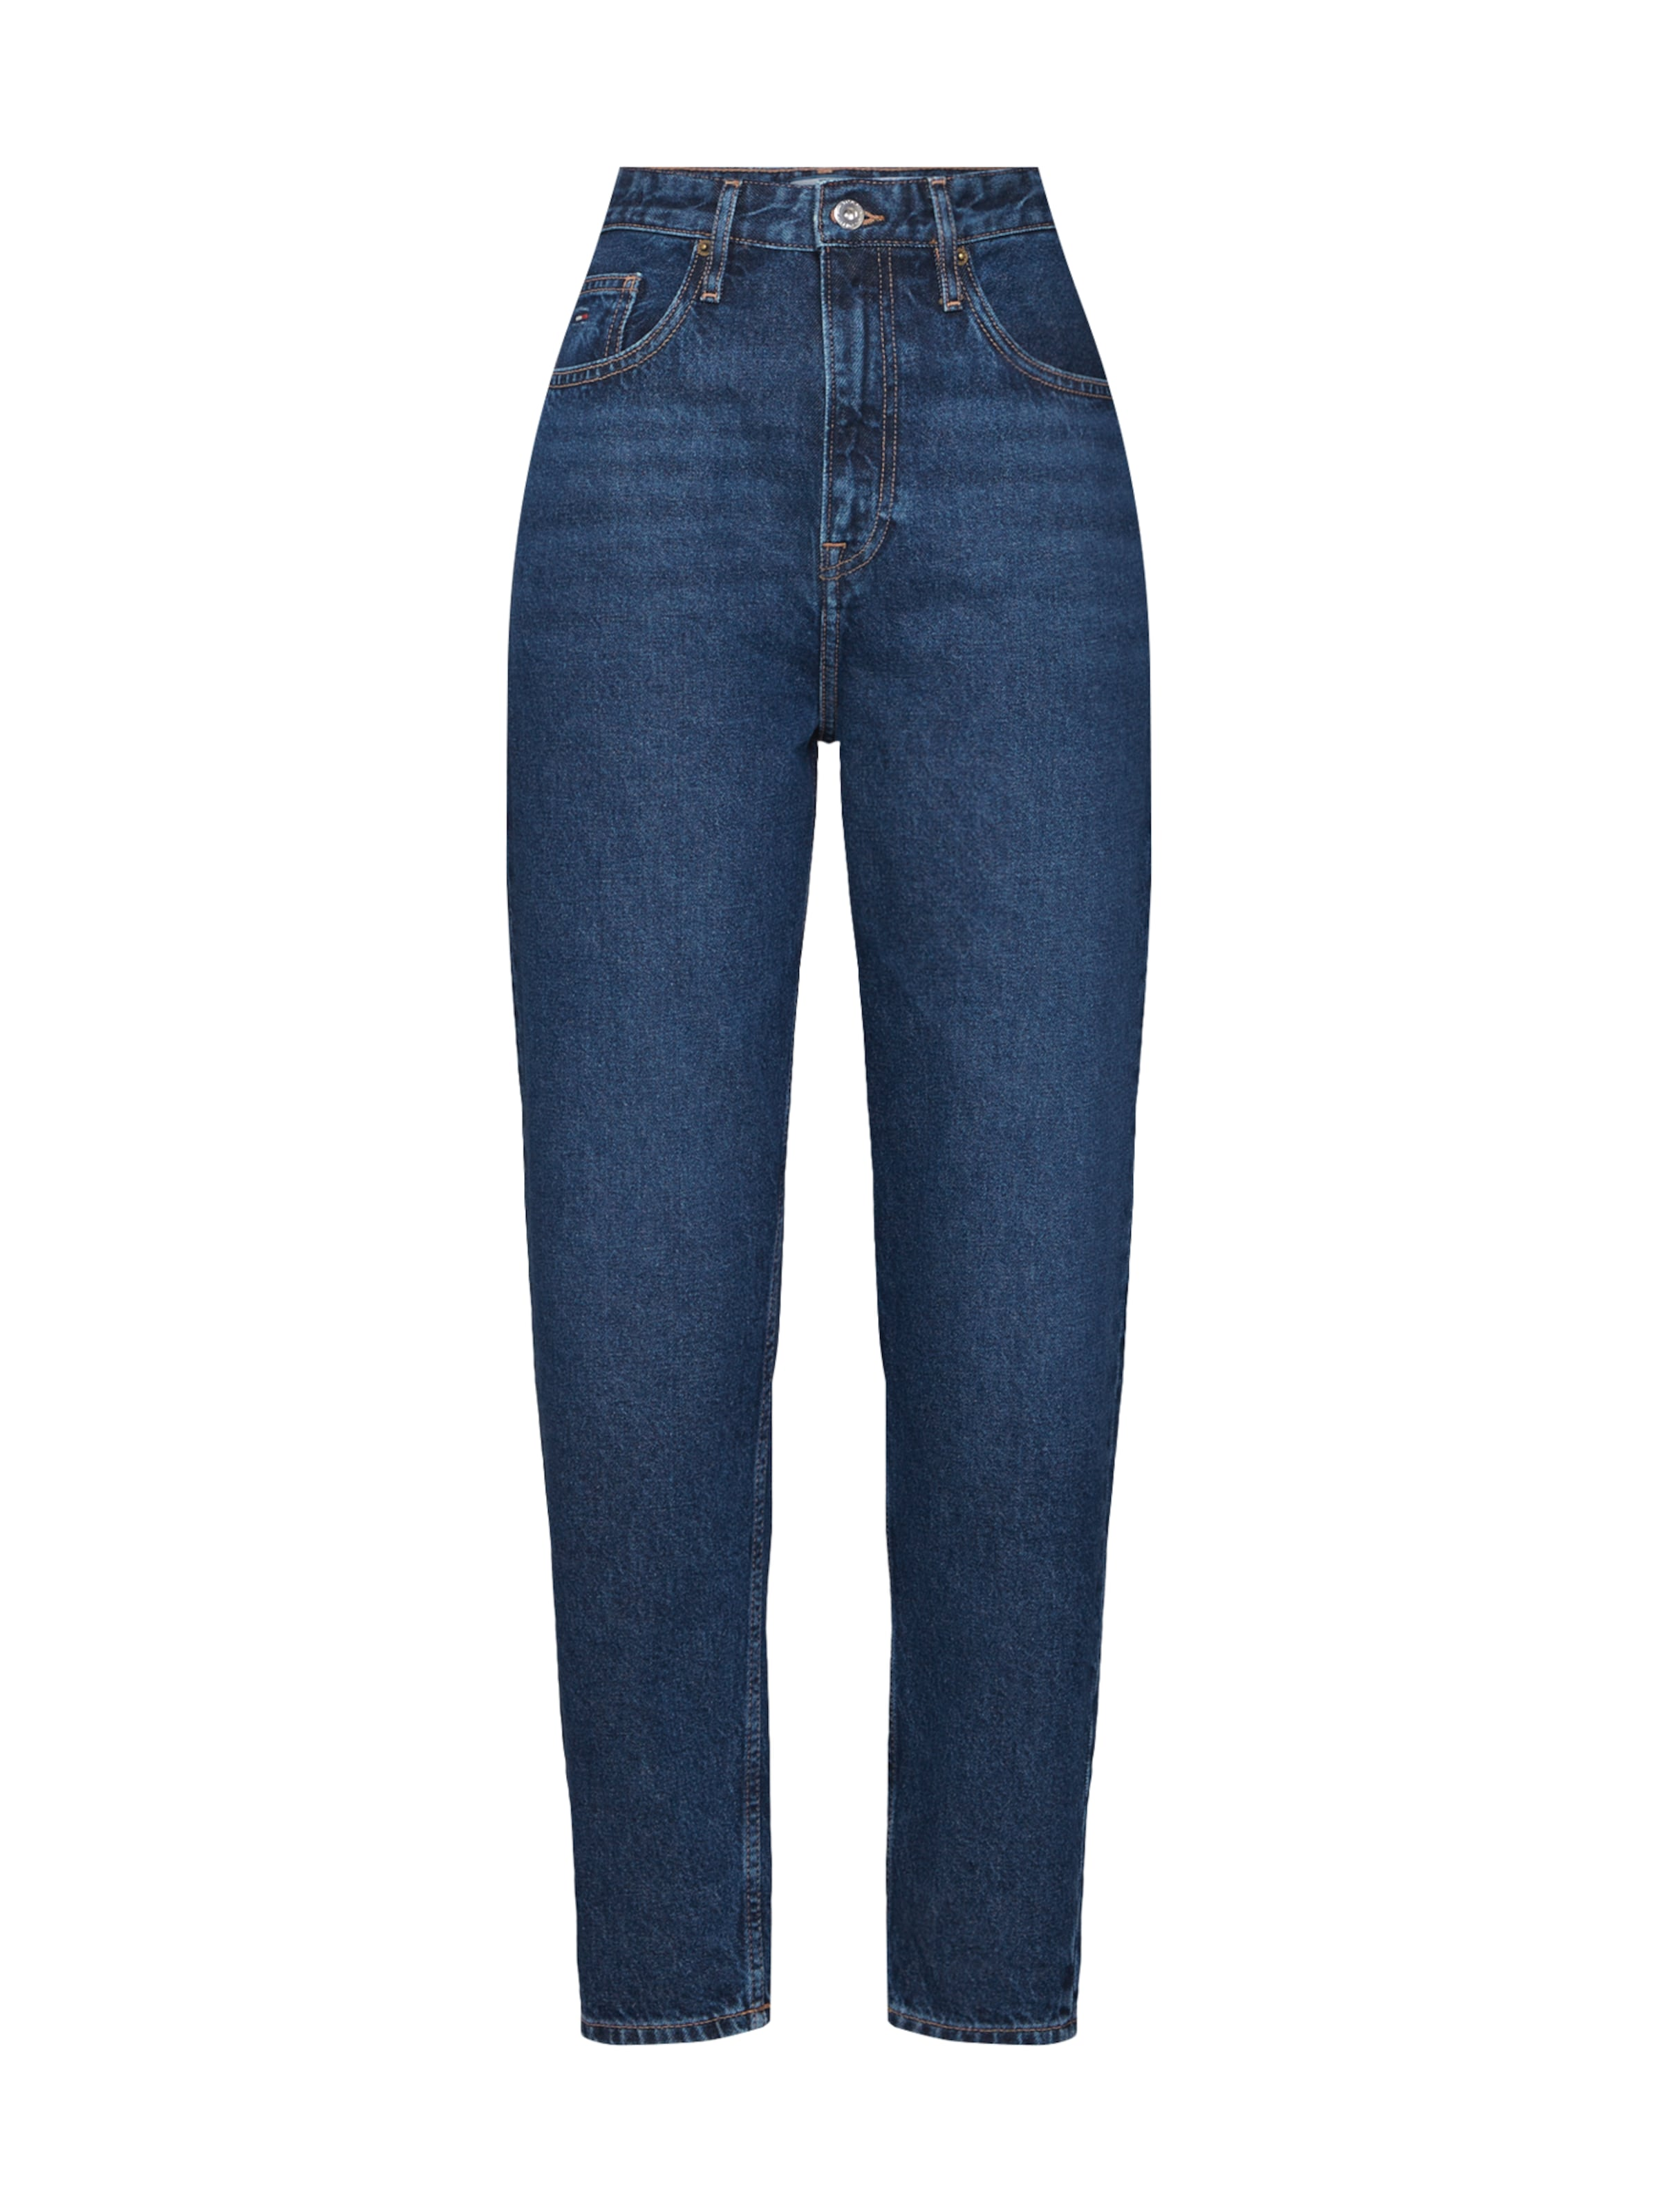 Jeans Denim Tommy Tommy Jeans In In Blue Jeans Blue Denim In Tommy qzMVGSLUp